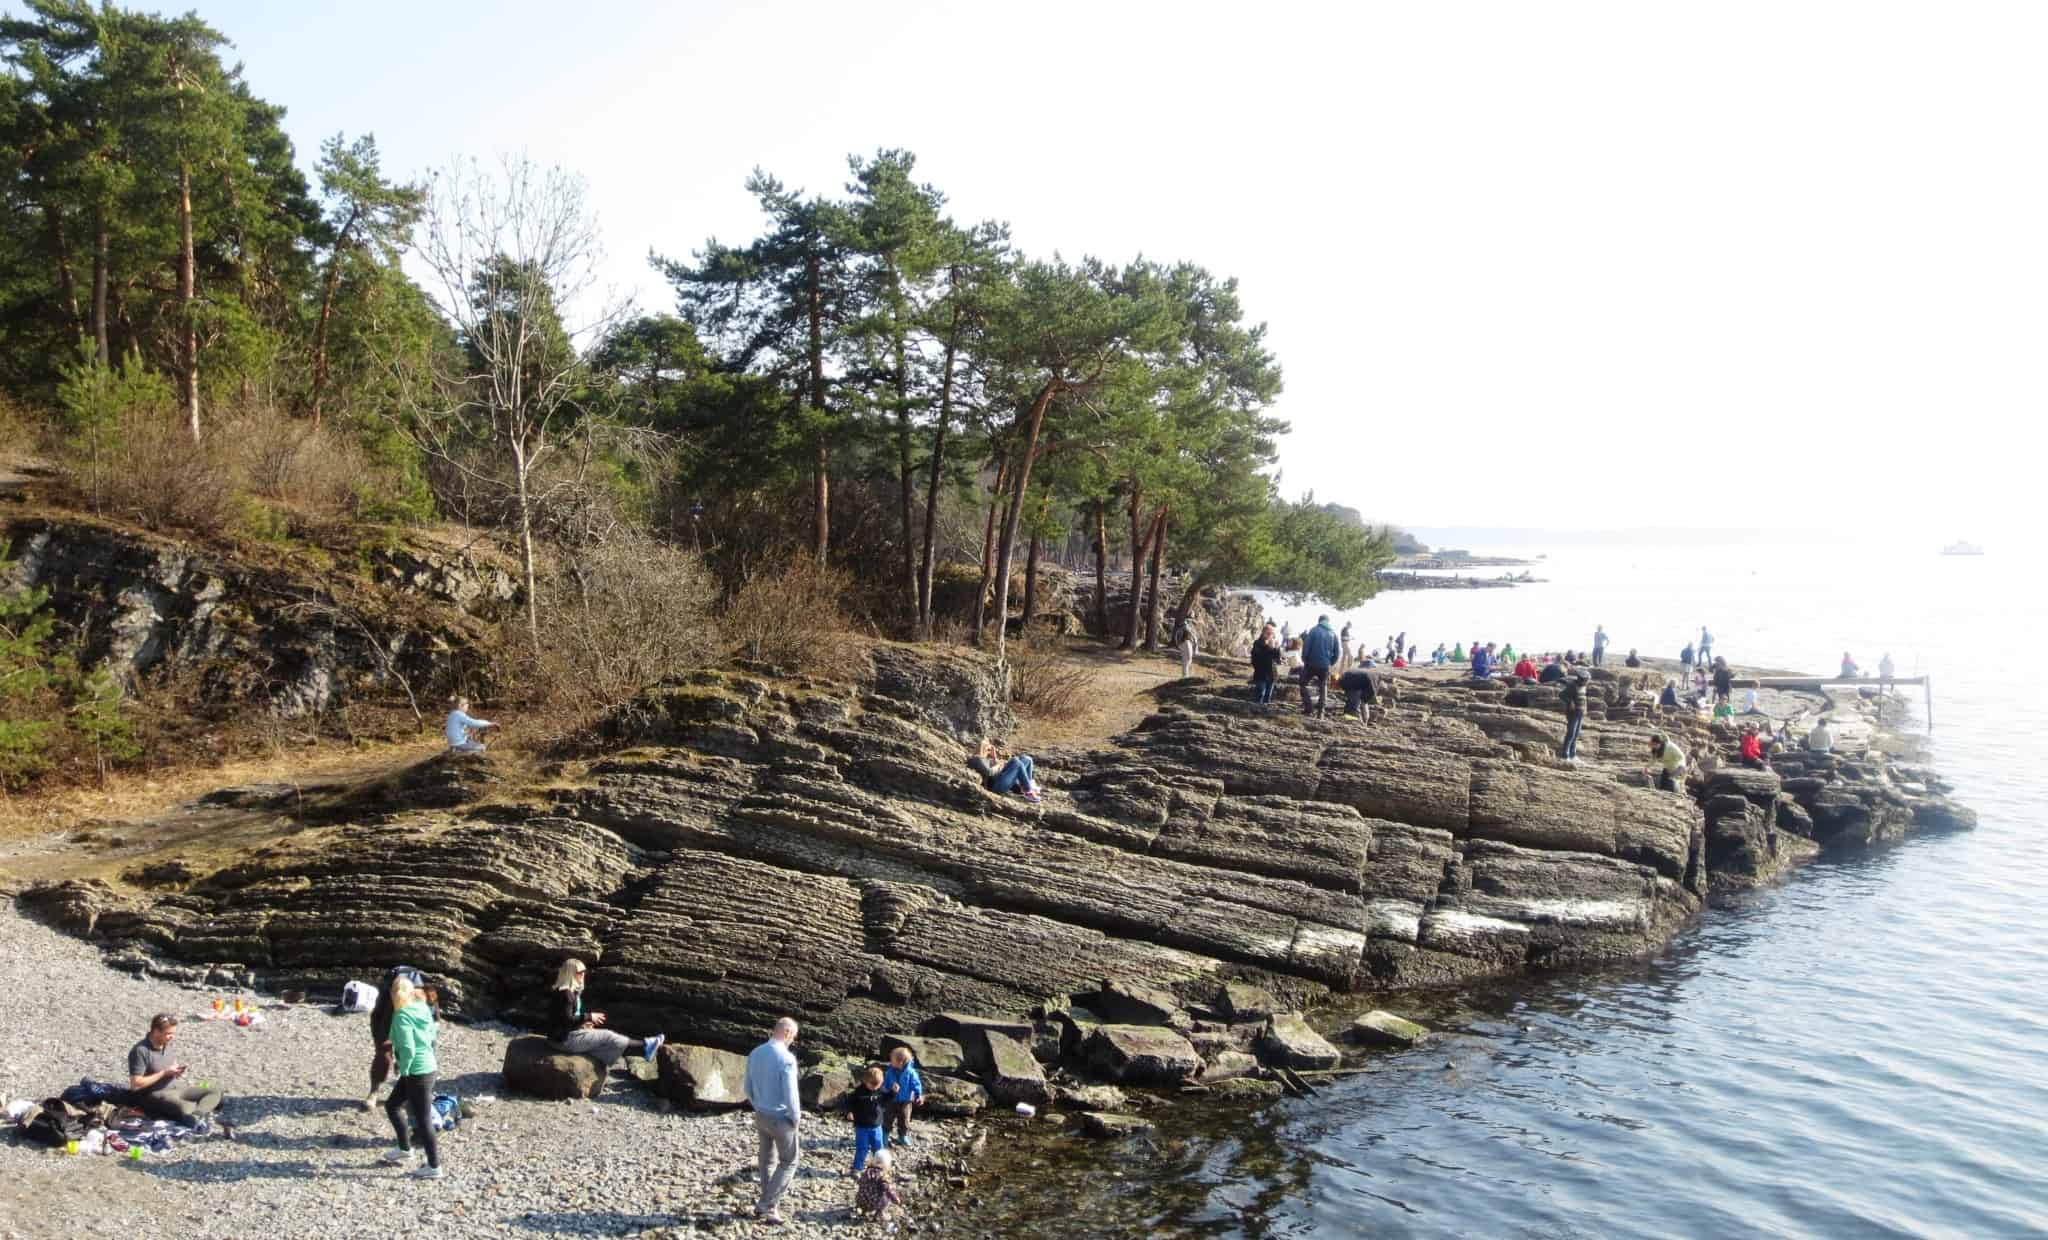 In front of the Radhuset you will find several jetties from which the ferries leave for the island of Bygdoy.